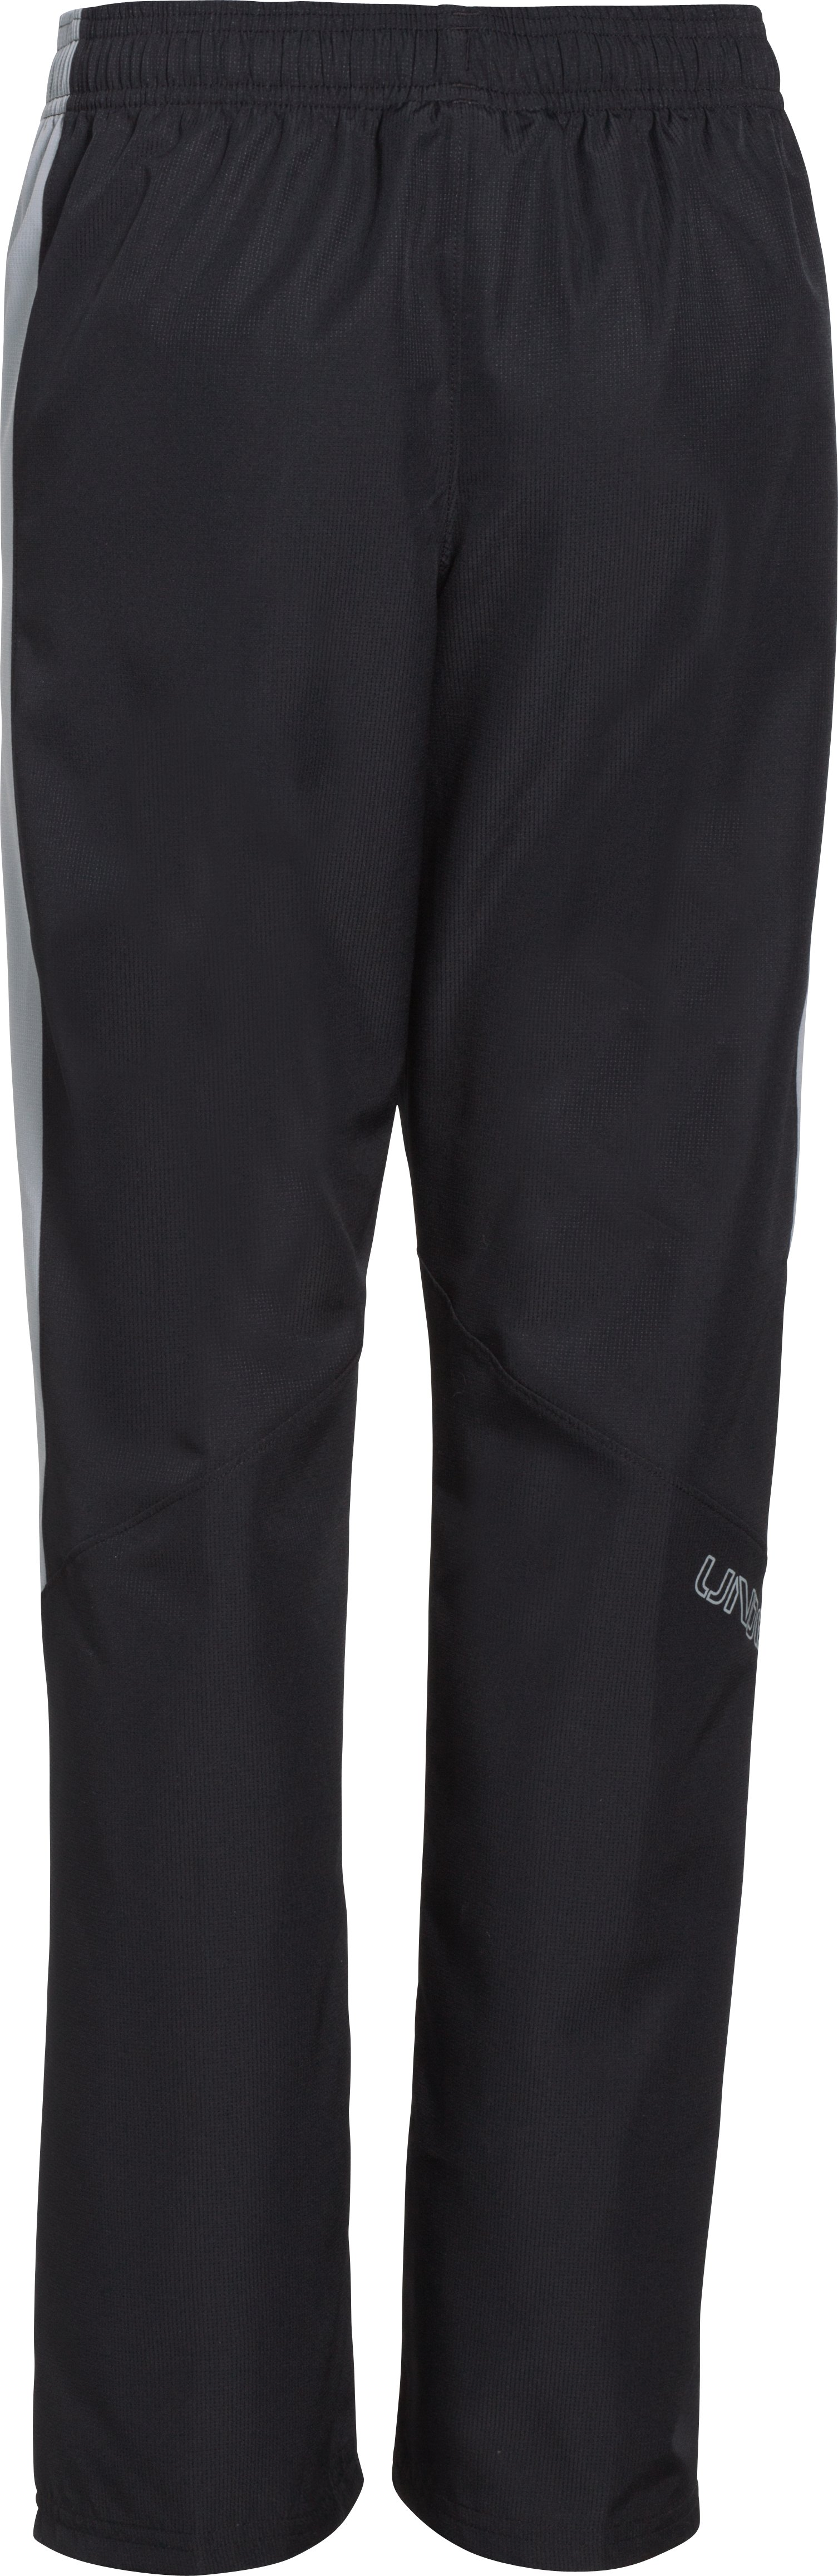 Main Enforcer Woven Pants, Black , undefined